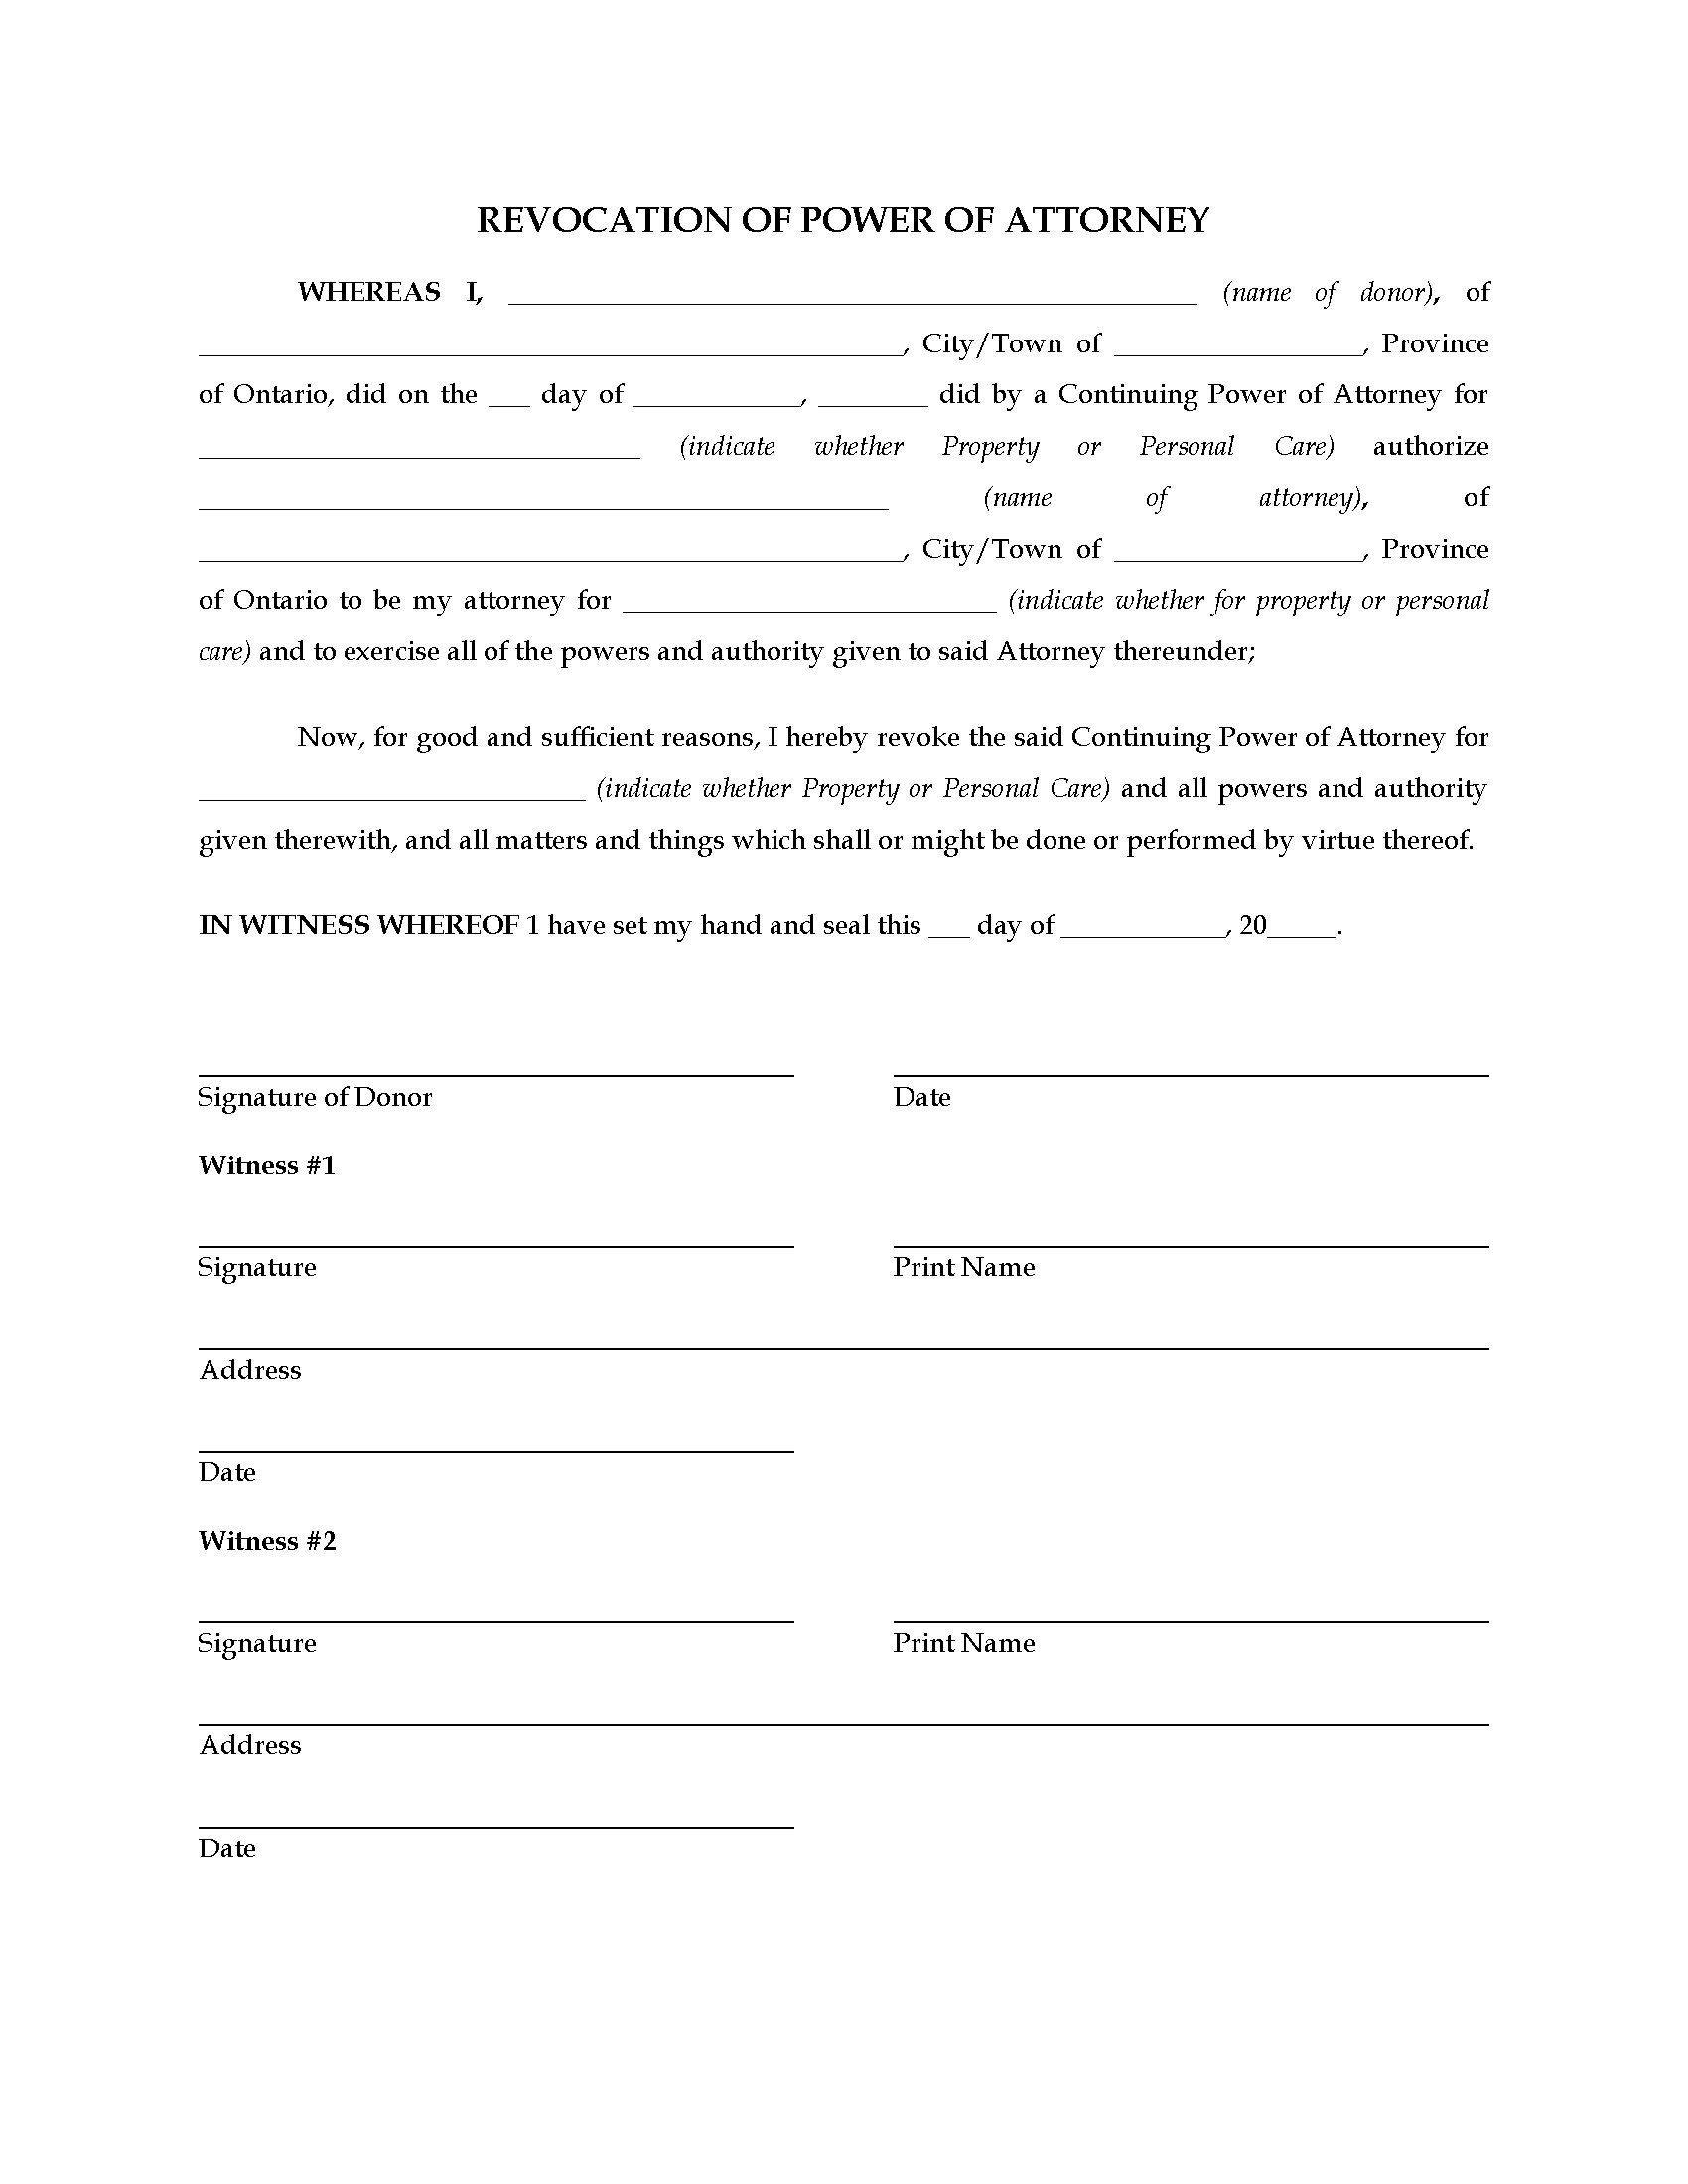 Free Durable Power Of Attorney Forms To Print – Printable Sample - Free Printable Revocation Of Power Of Attorney Form